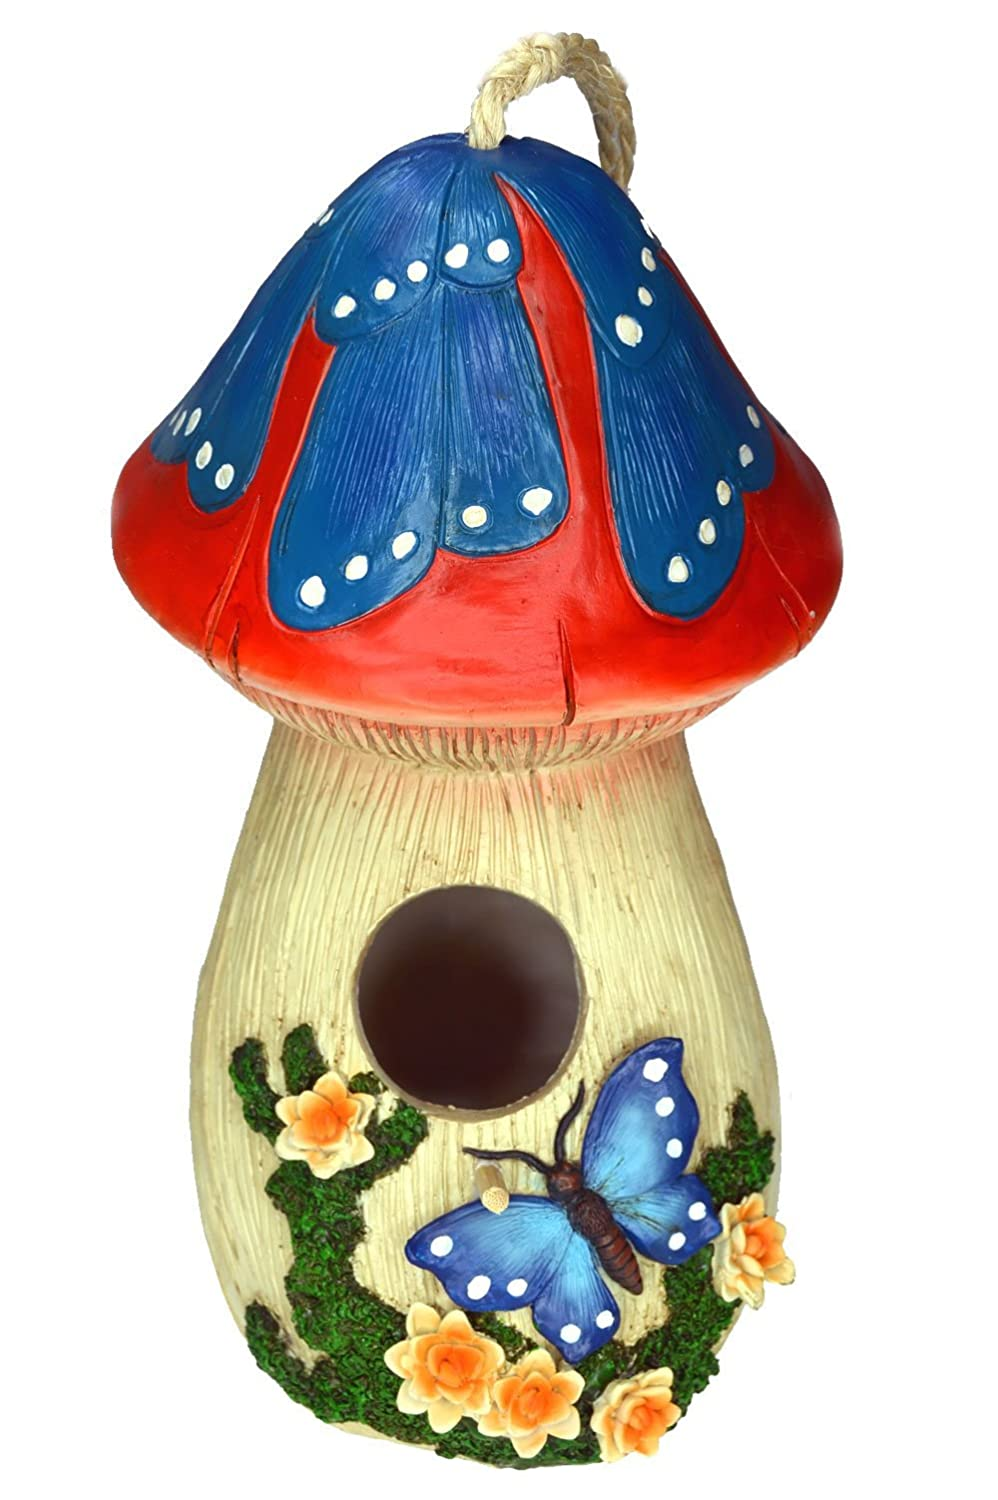 Amazon.com : Hand Painted Mushroom Birdhouse With Flowers And Butterfly,  Garden Decor : Garden U0026 Outdoor Great Ideas